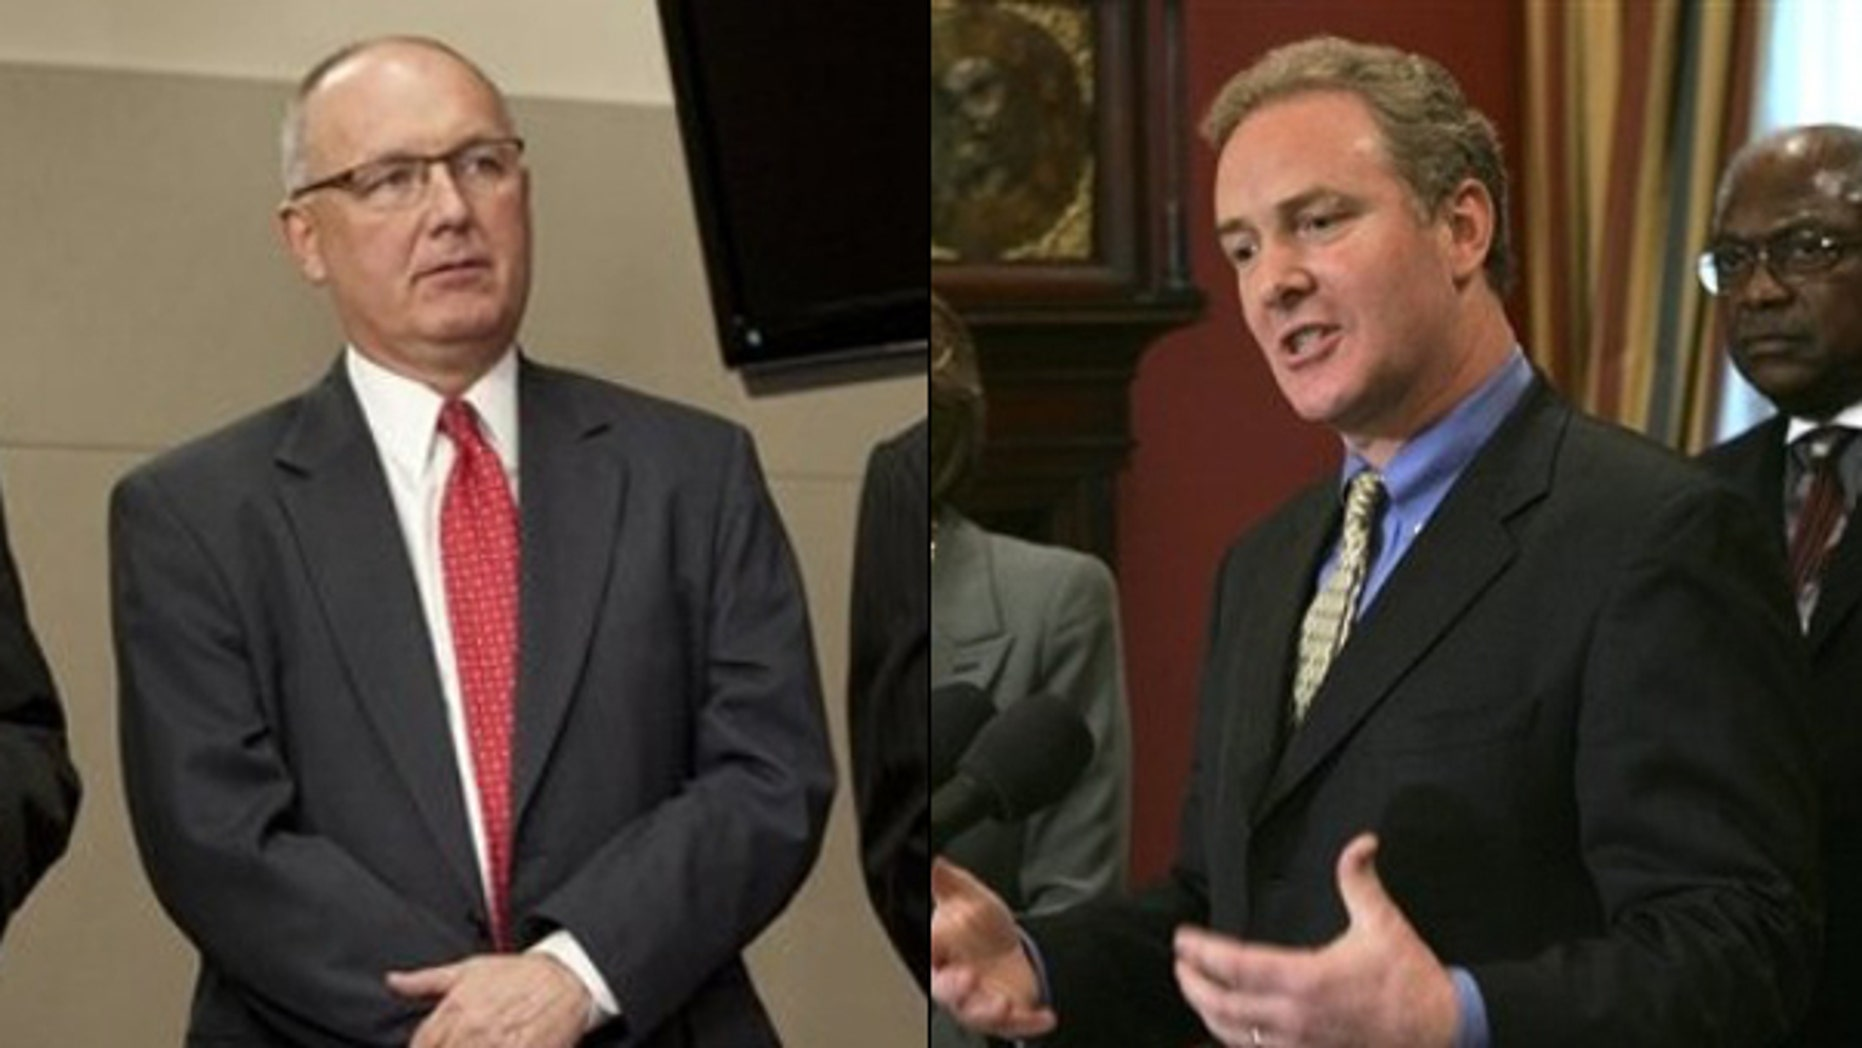 Shown here are Republican Rep. Pete Hoekstra, left, and Democratic Rep. Chris Van Hollen. (AP Photos)